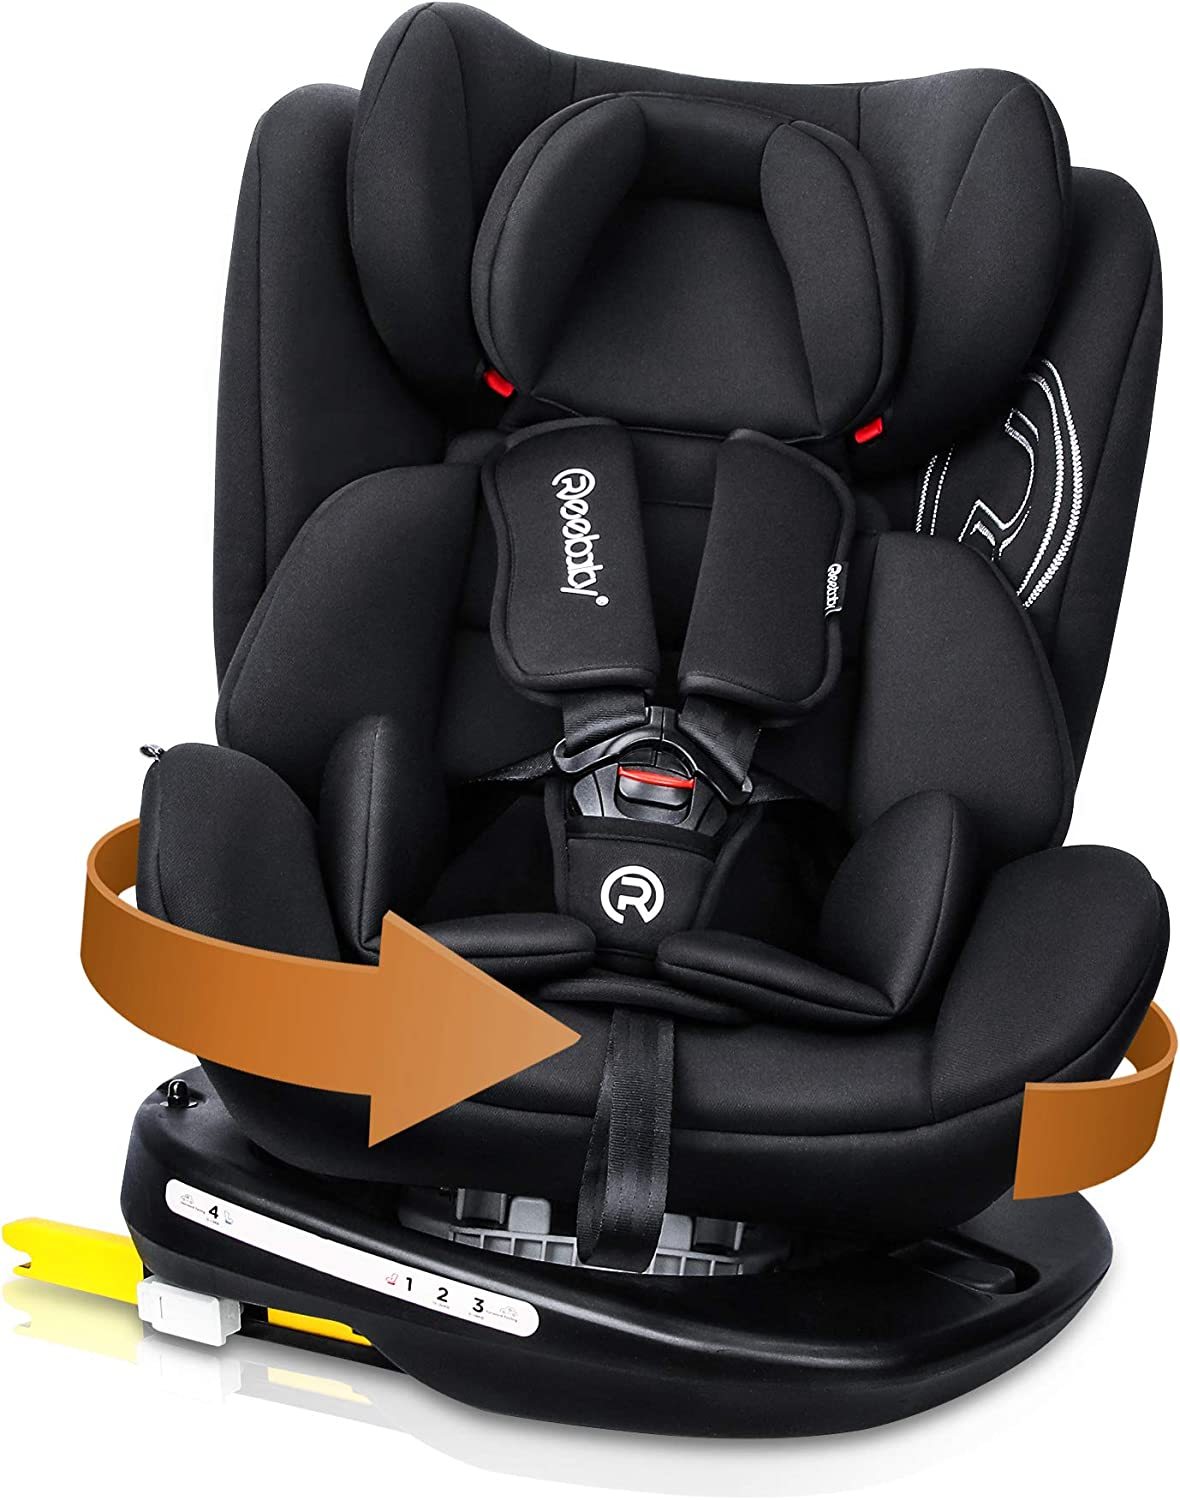 Reebaby Rotation 360 Baby Car Seat for Child Group 0+/1/2/3 ...